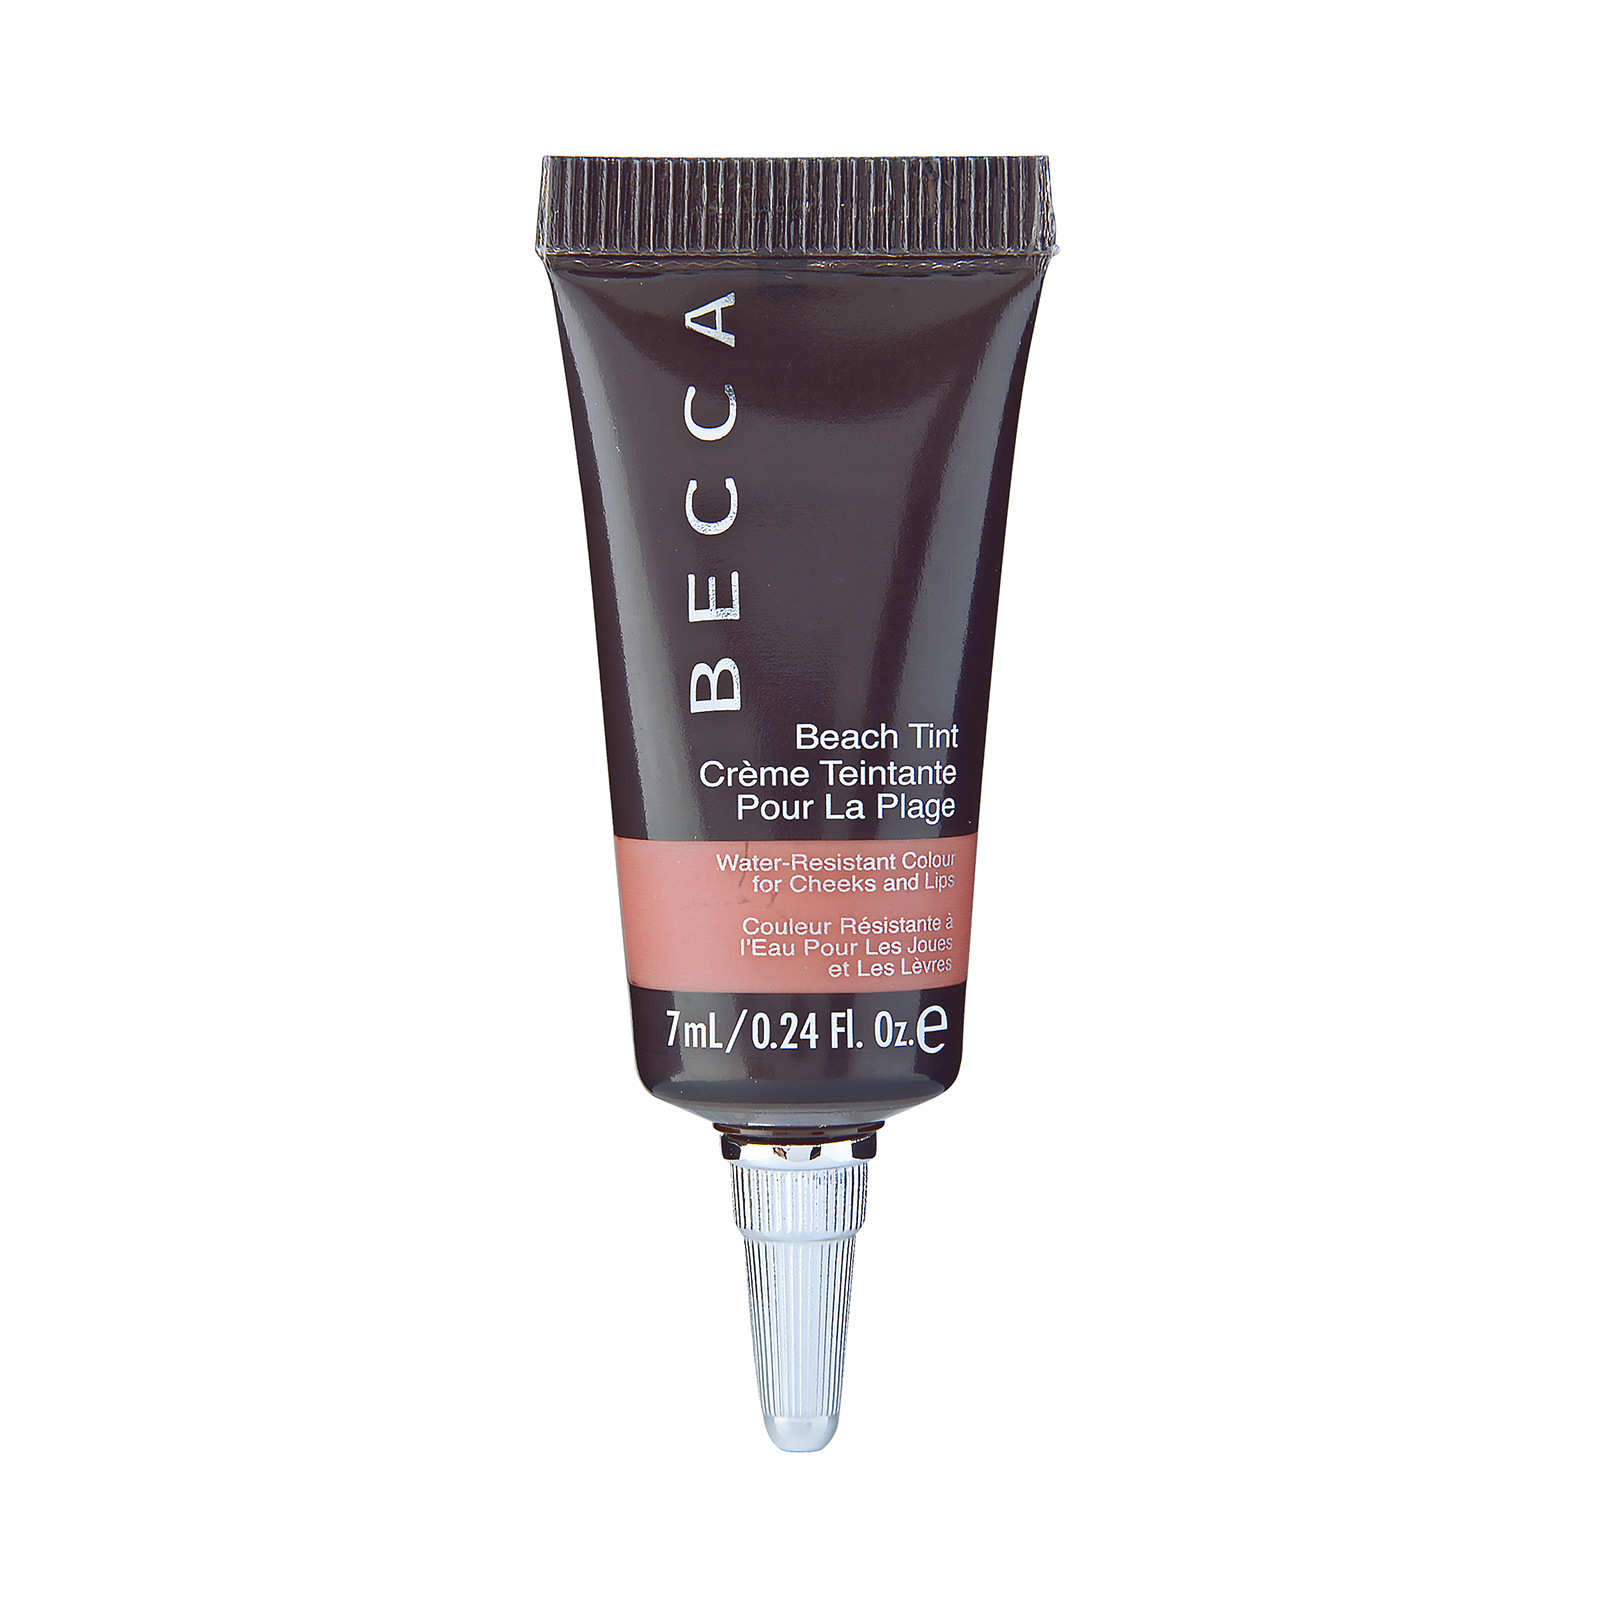 Becca Beach Tint Grapefruit, 0.24oz, 7ml